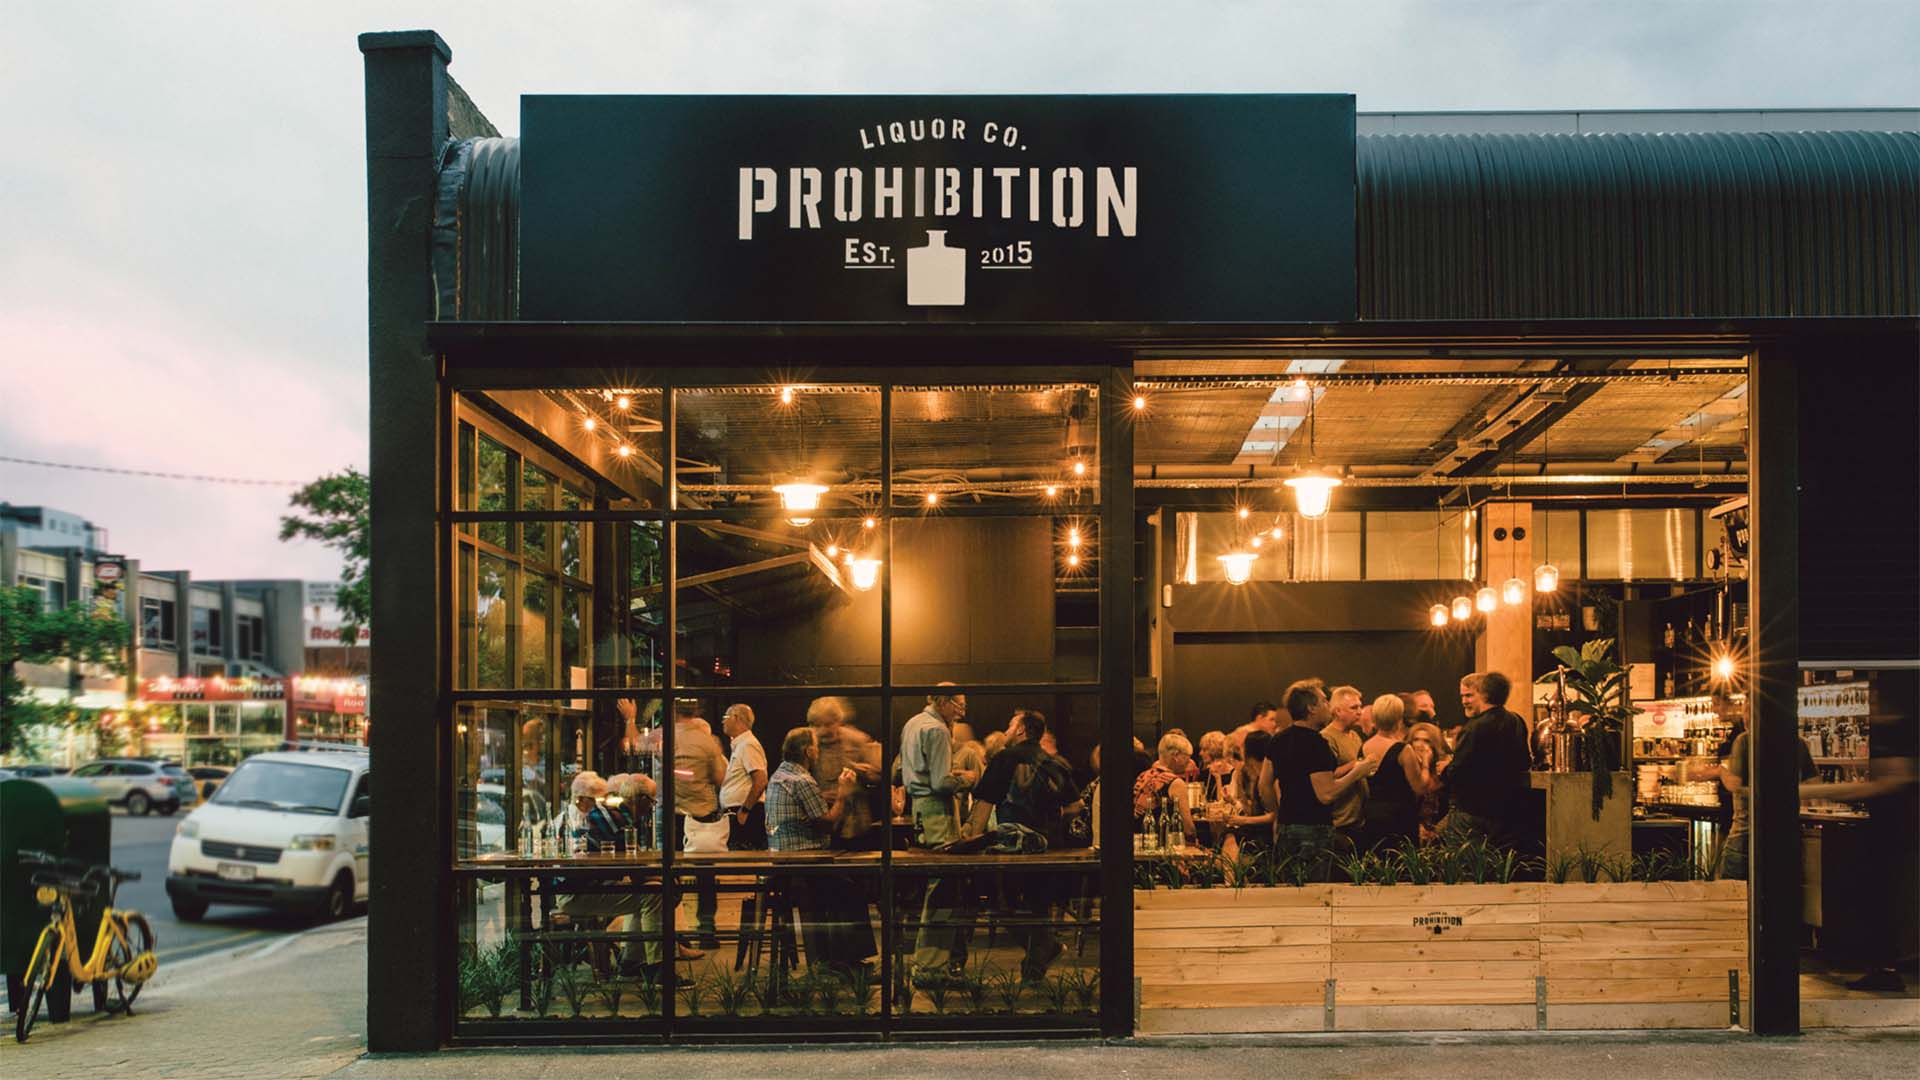 Prohibition Liquor Co